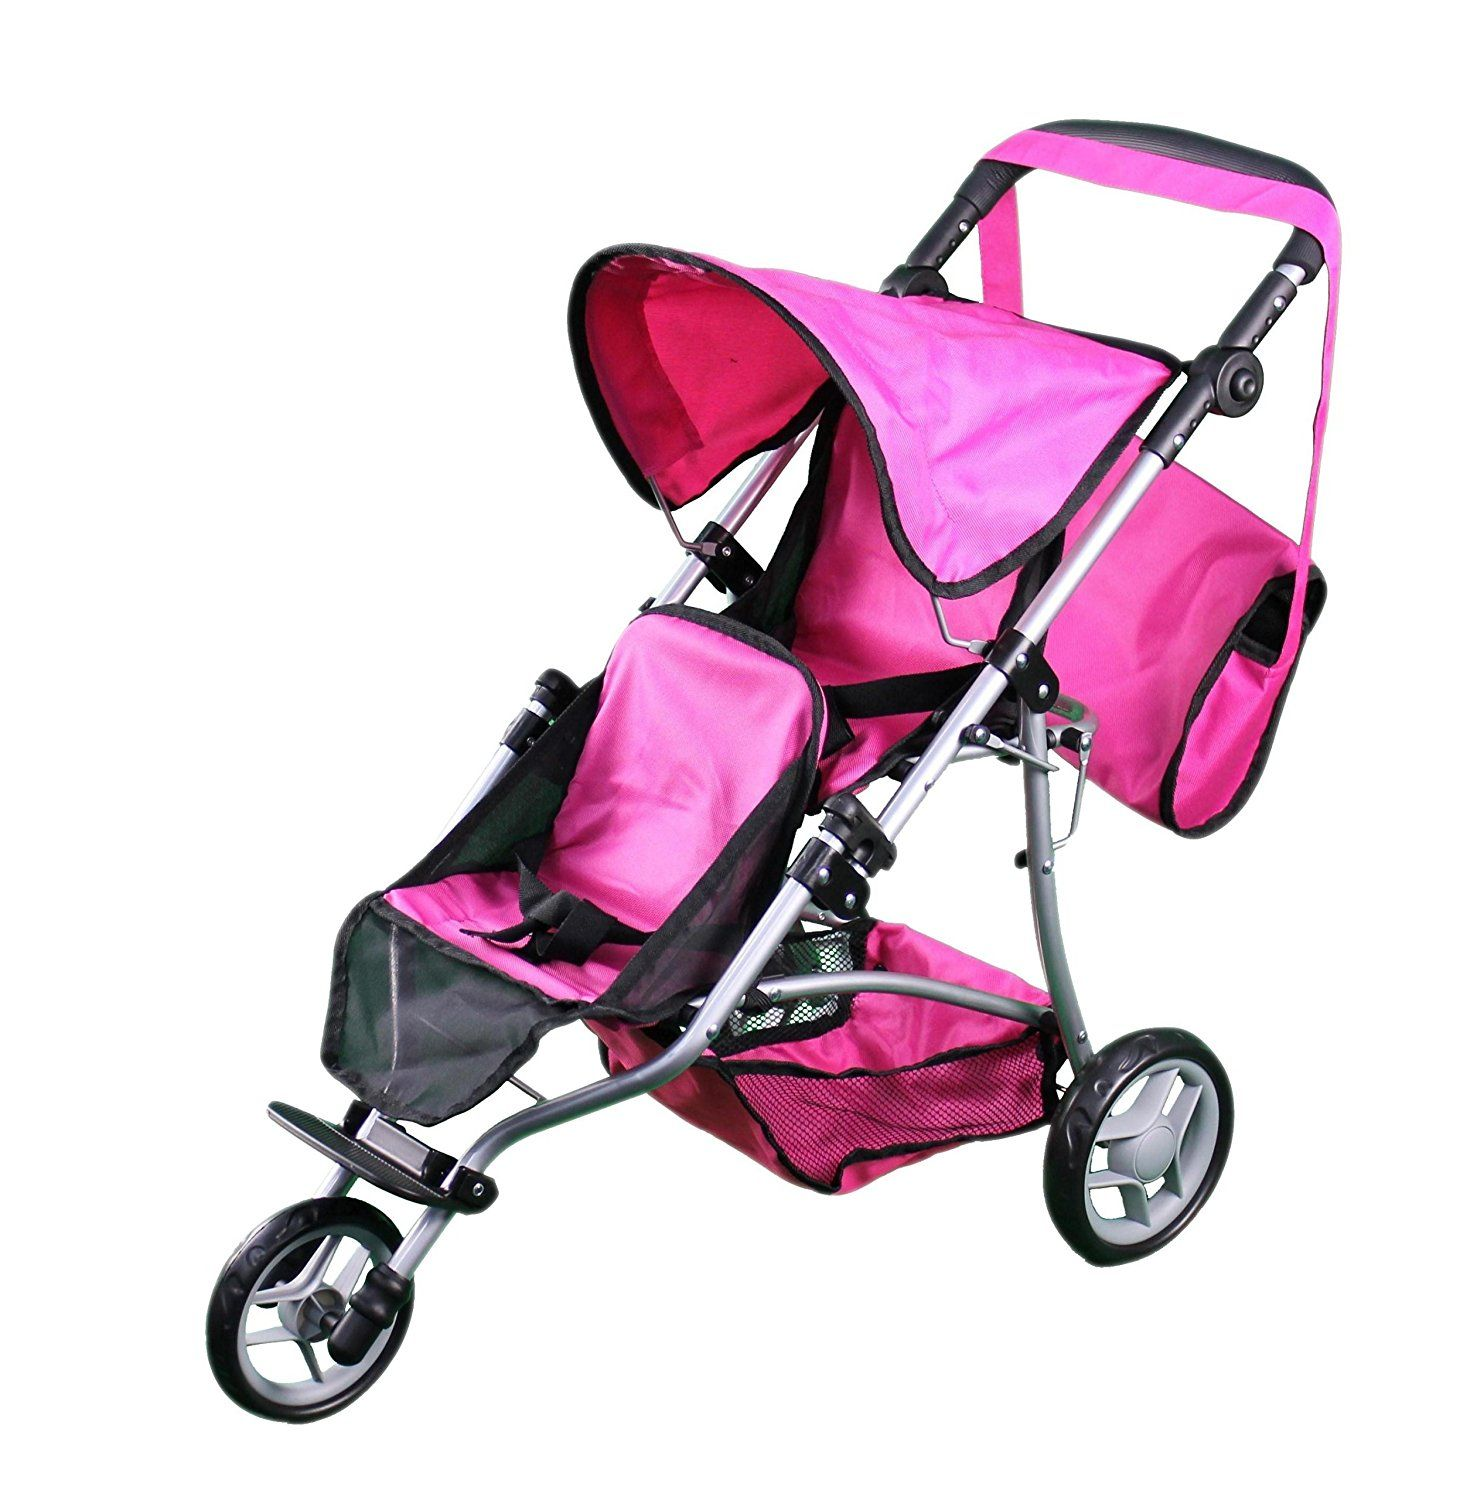 Mommy & Me Twin Doll Jogger 9669DL with Free